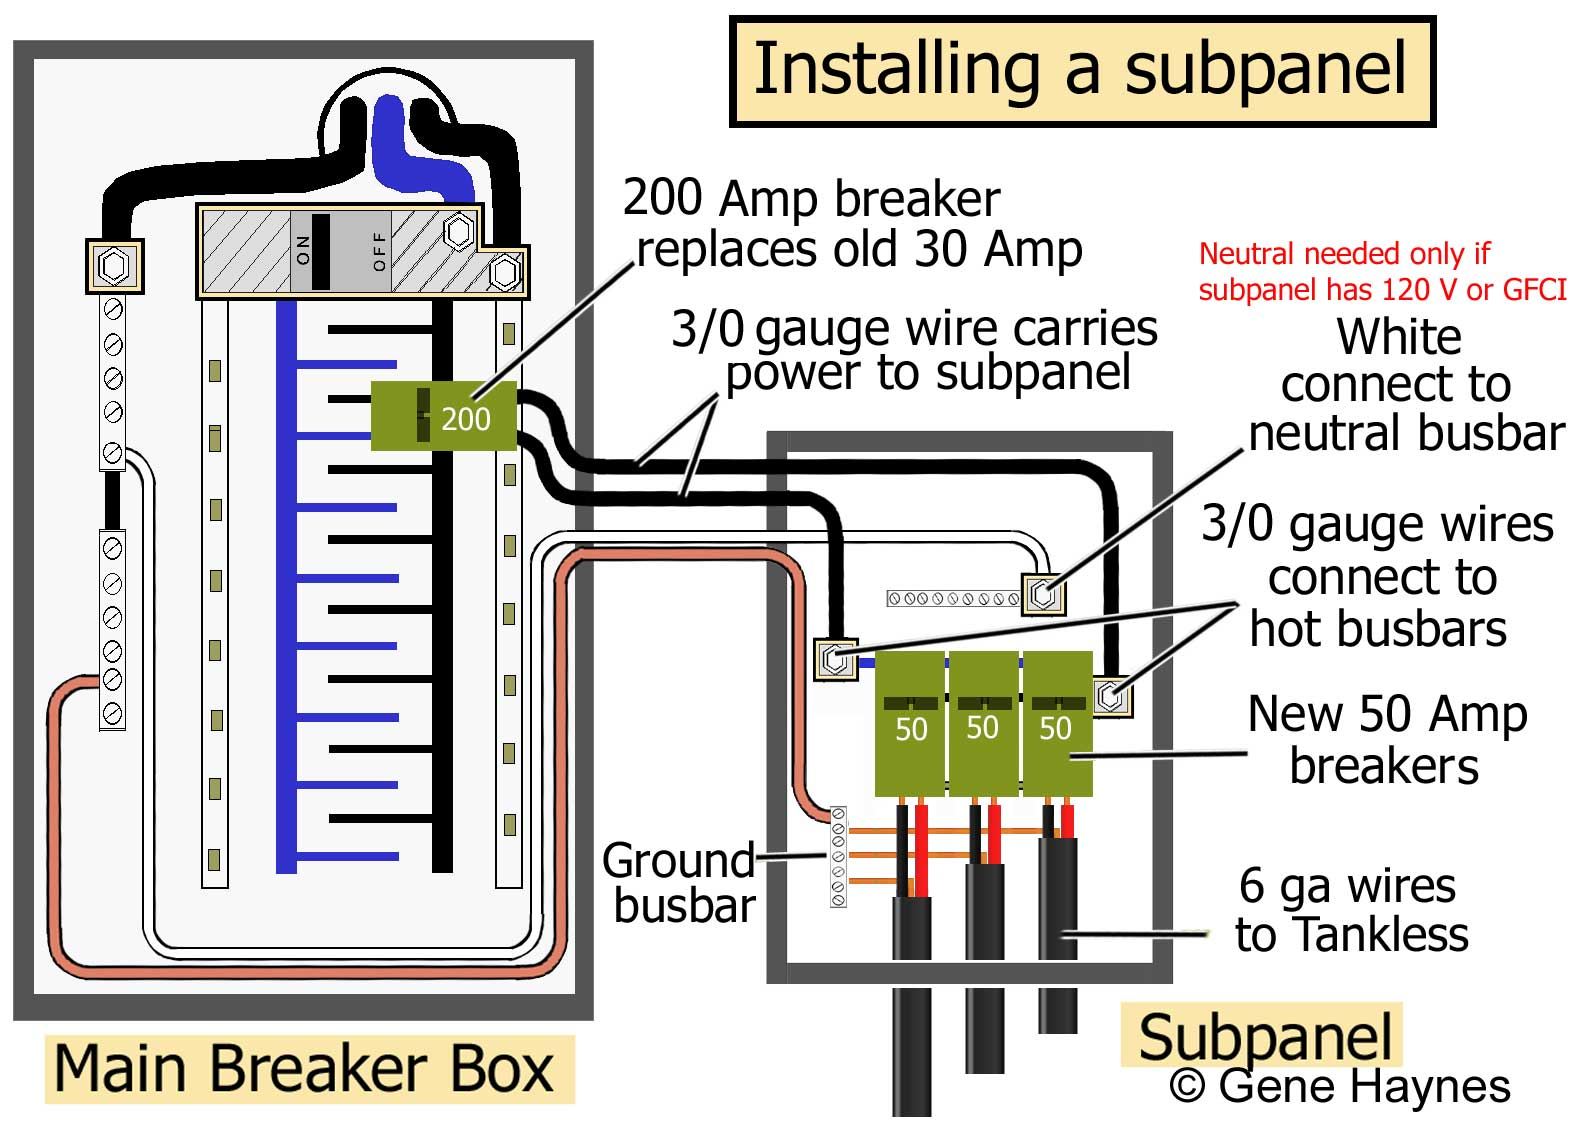 How to install a subpanel how to install main lug larger image 150 amp subpanel with 240volt and 120volt 150 amp breaker uses 20 wire neutral wire needed only if subpanel has 120volt breakers or gfci greentooth Choice Image